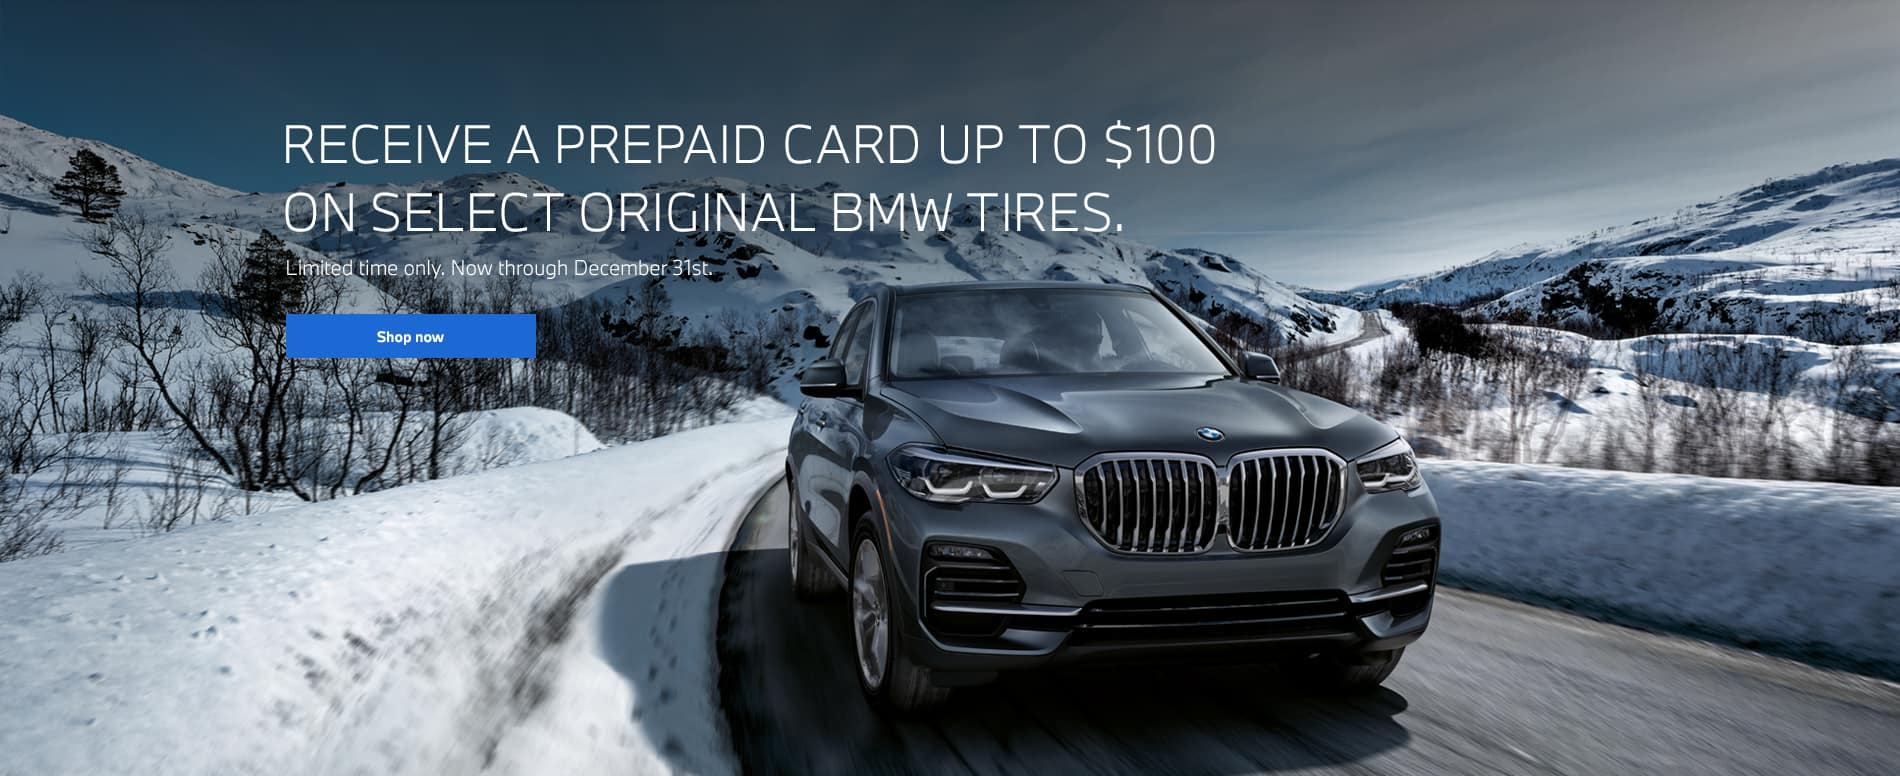 BMW_Oct-DecTireRebate20_DealerFMA_snow-1900×776